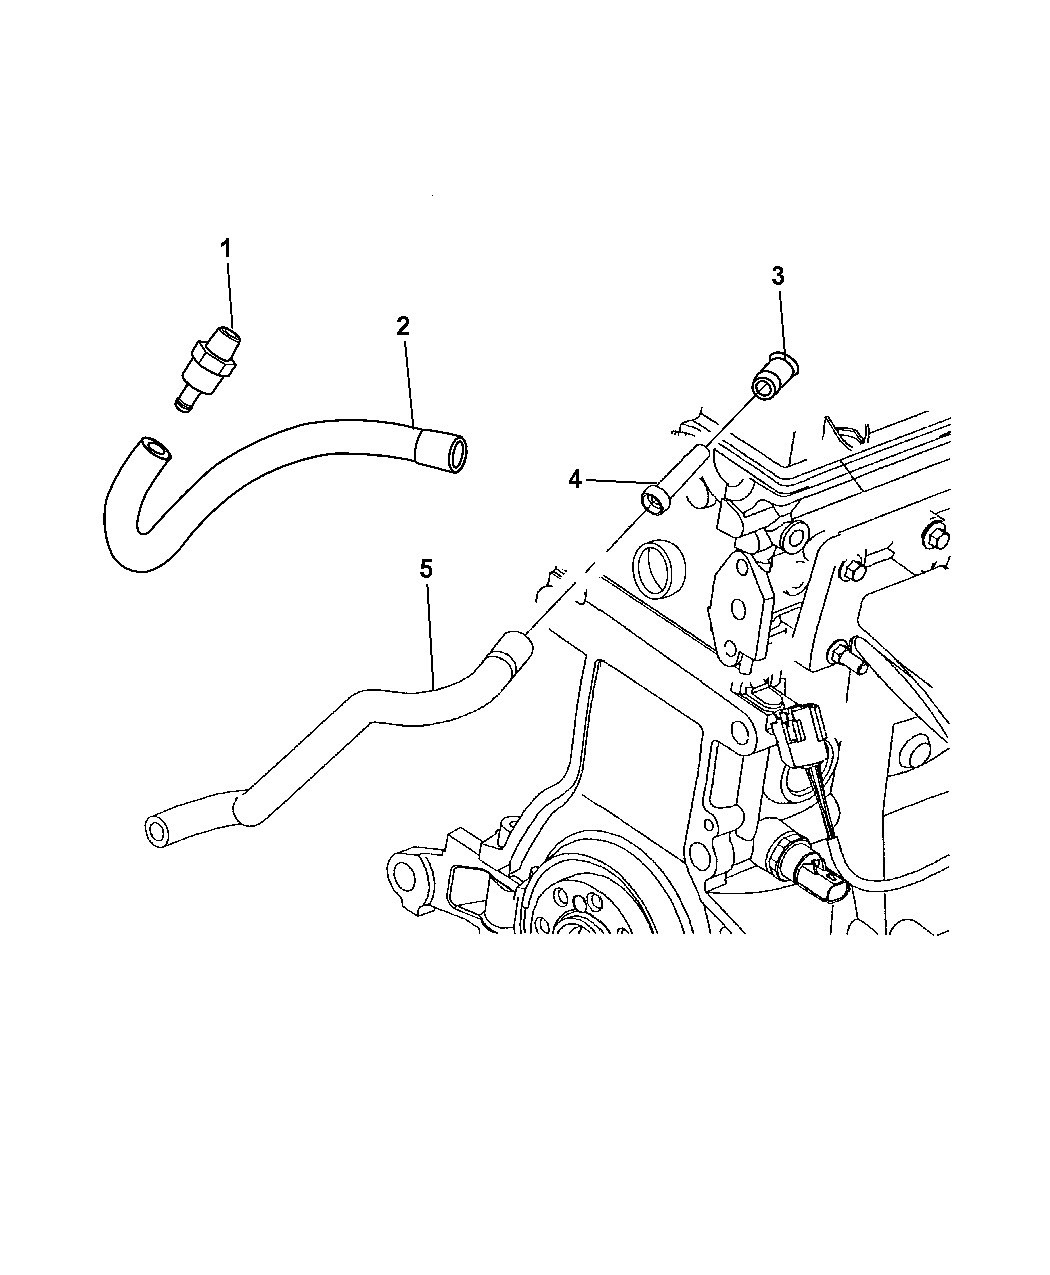 2008 Chrysler Pt Cruiser Crankcase Ventilation Engine Diagram Thumbnail 1